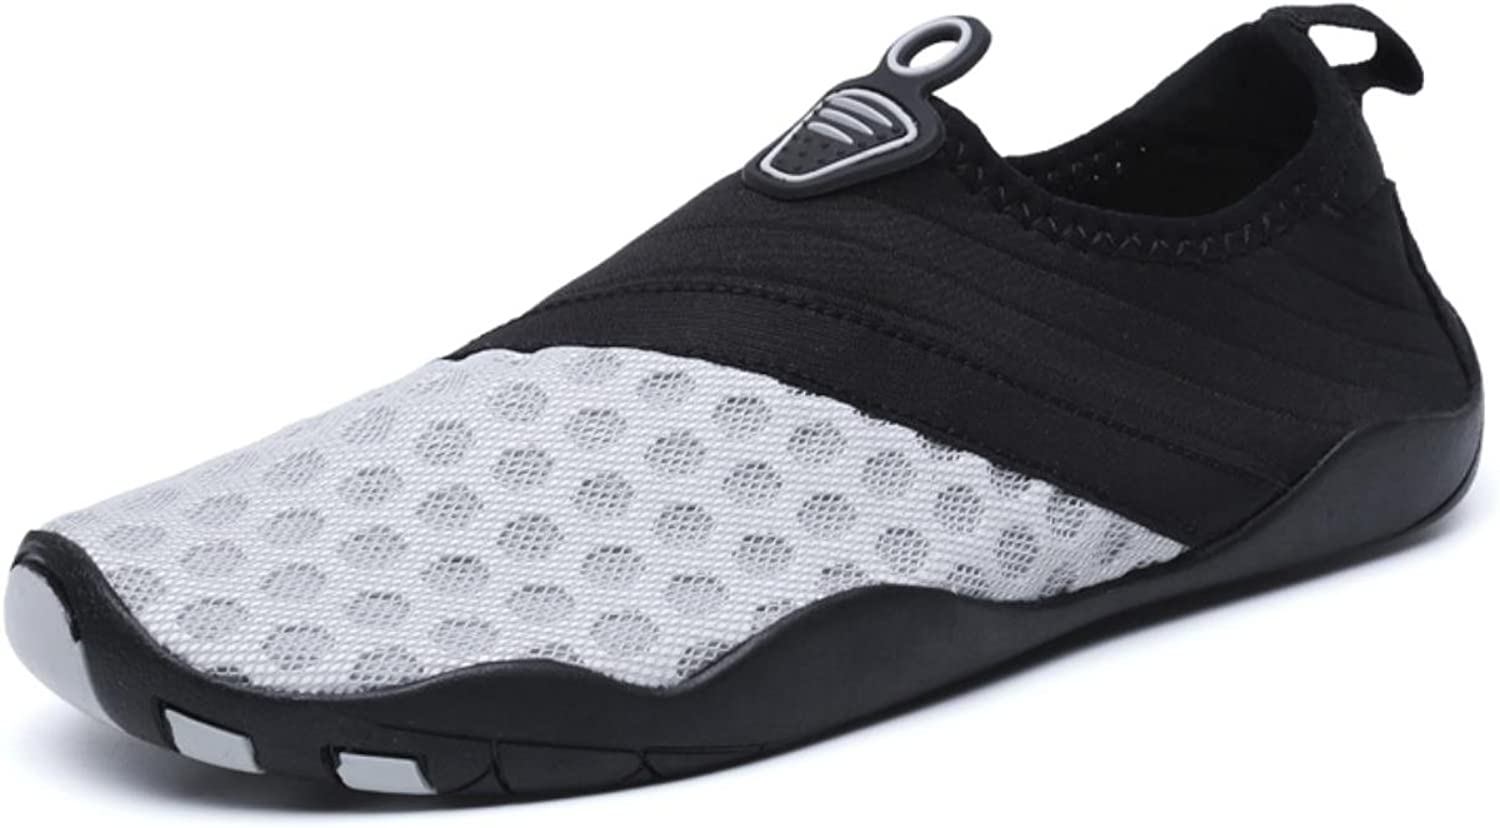 New Swimming shoes for Man Woman Breathable Mesh Quick-Drying Water shoes Men for Swim Aqua Socks Beach Footwear